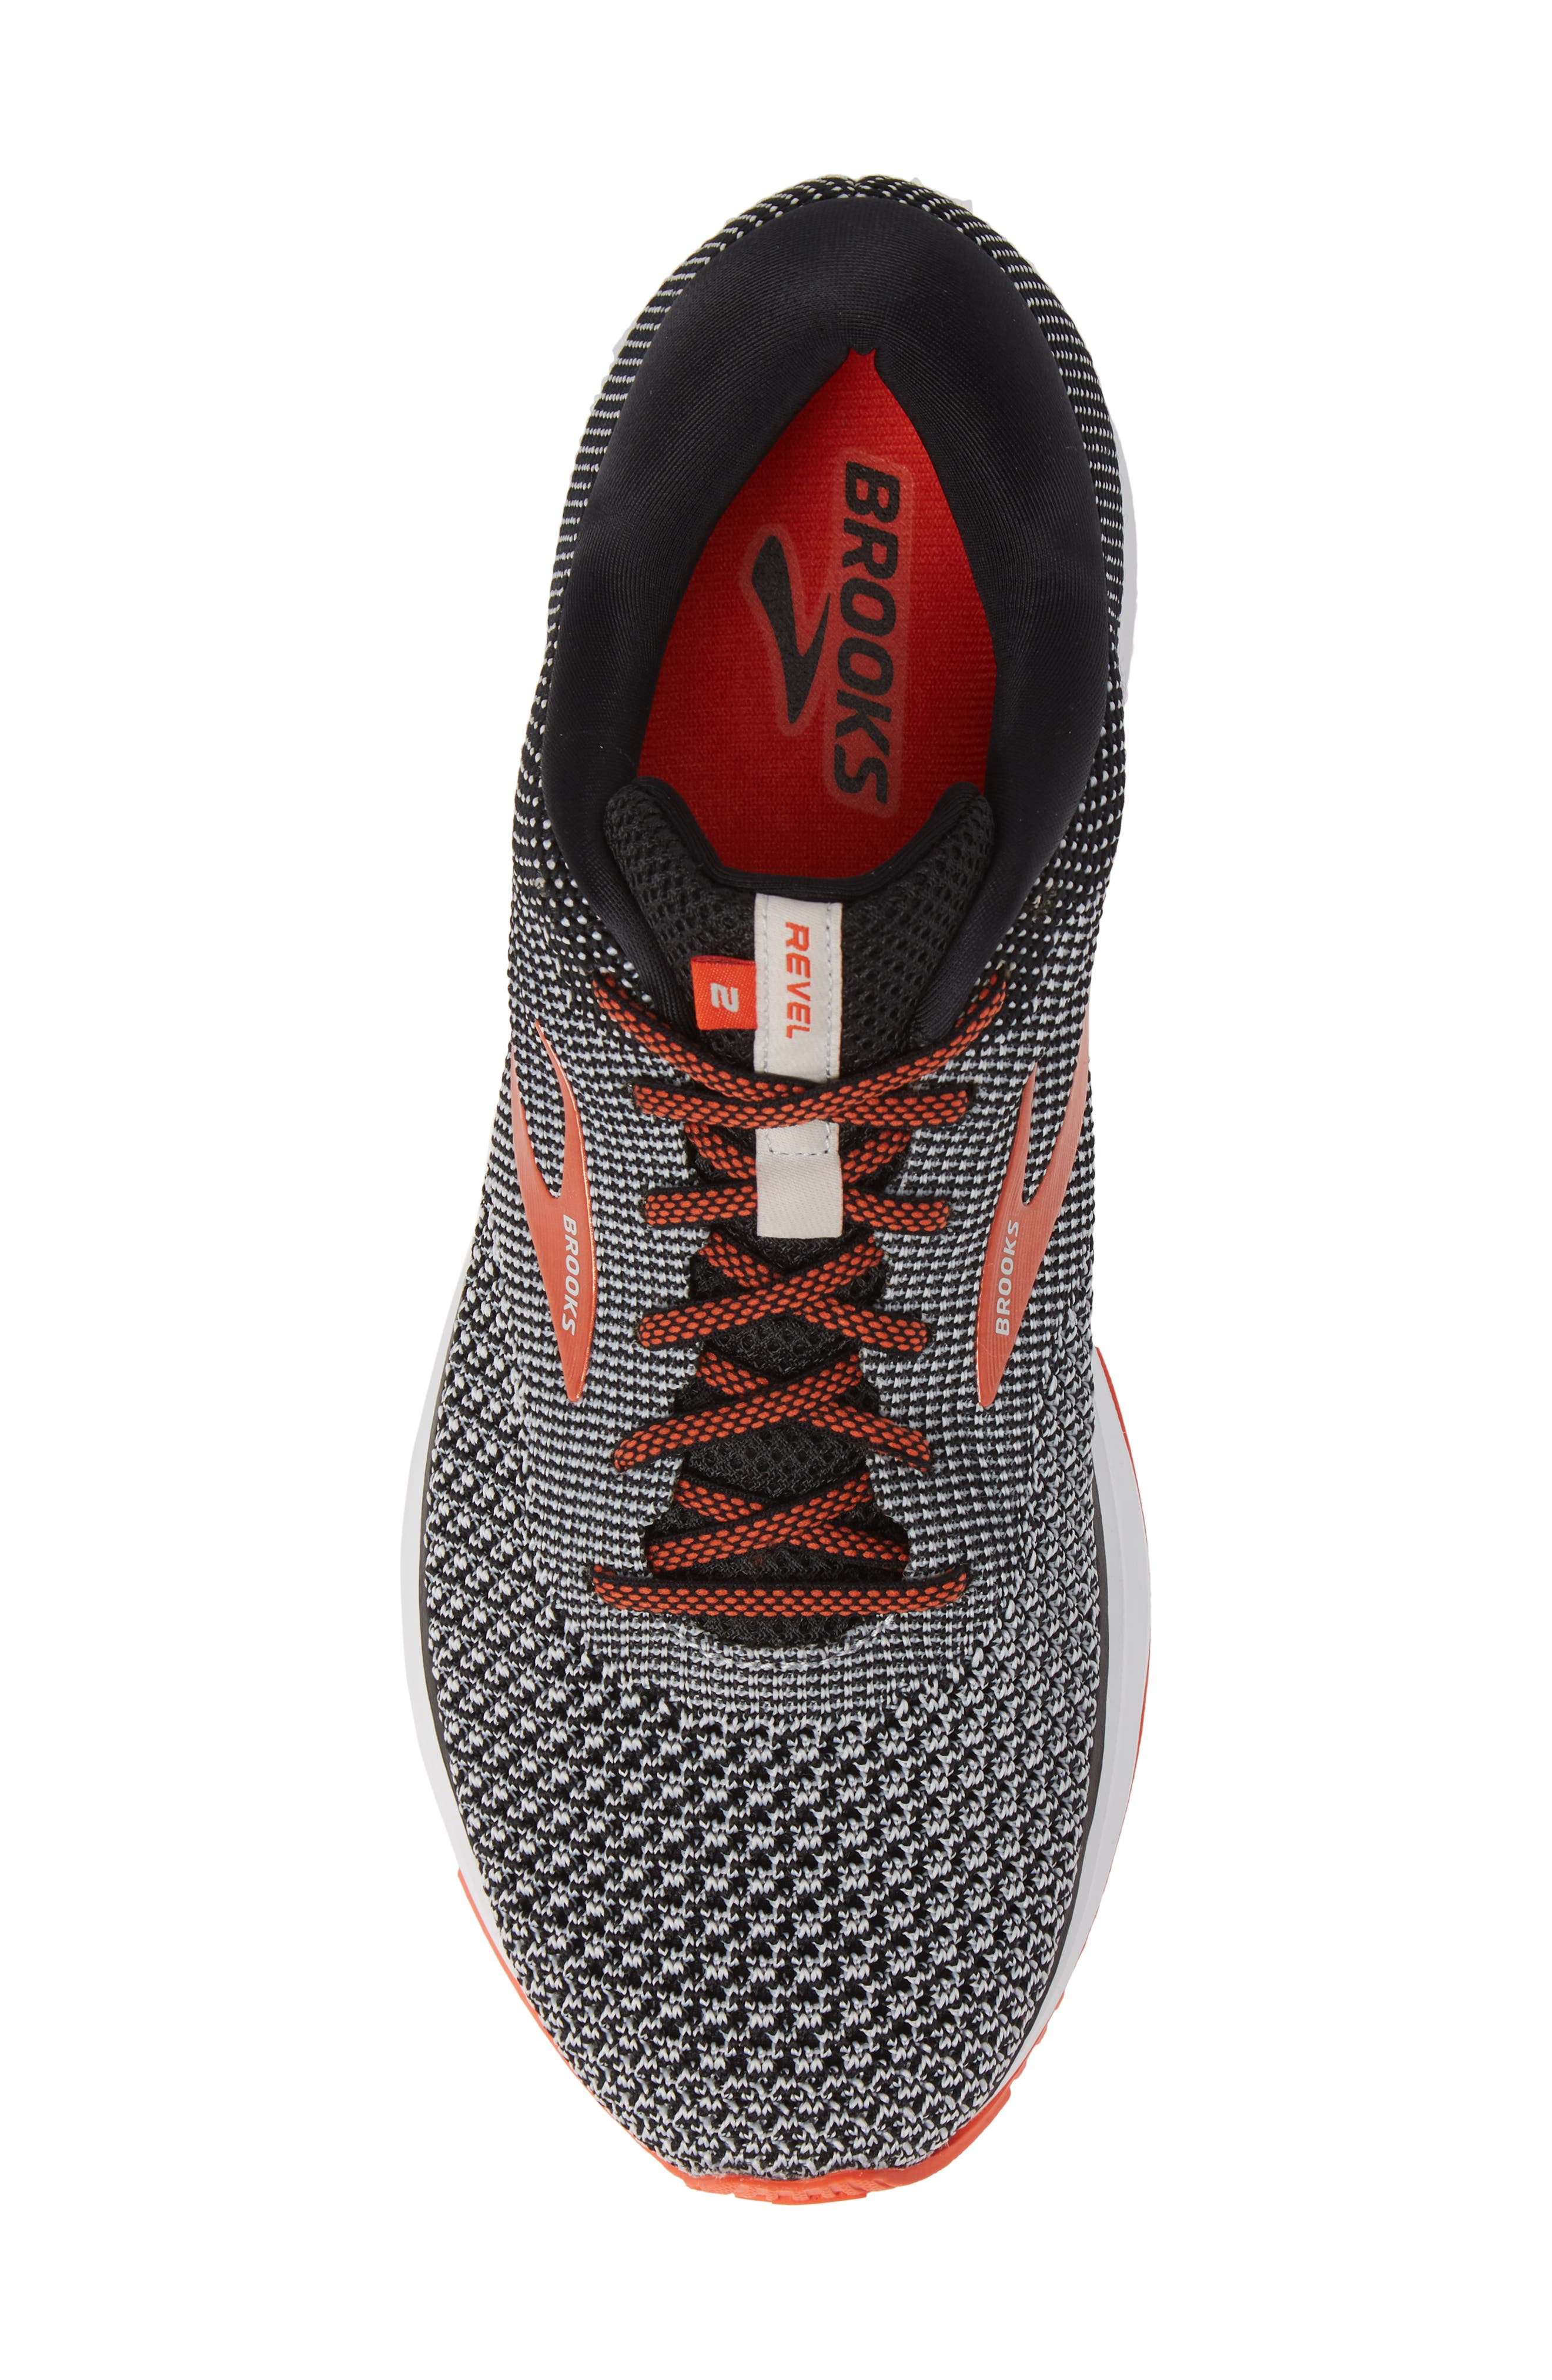 Revel 2 Running Shoe,                             Alternate thumbnail 5, color,                             BLACK/ LIGHT GREY/ ORANGE